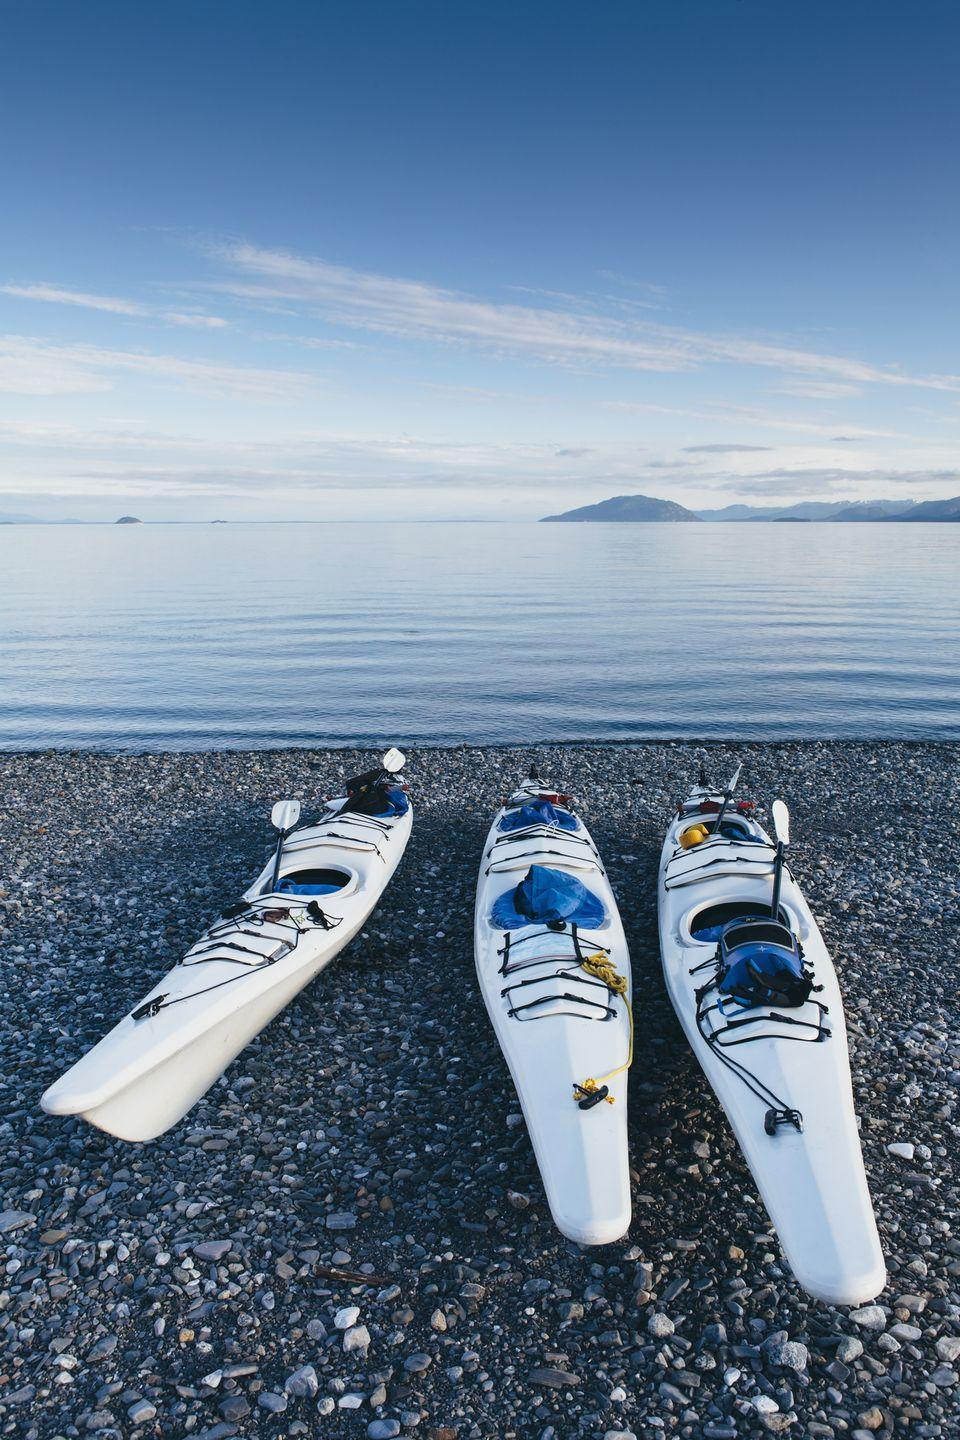 <p>Kayaks on a remote beach along the Muir Inlet in Alaska, overlooking Glacier Bay National Park in the distance.</p>